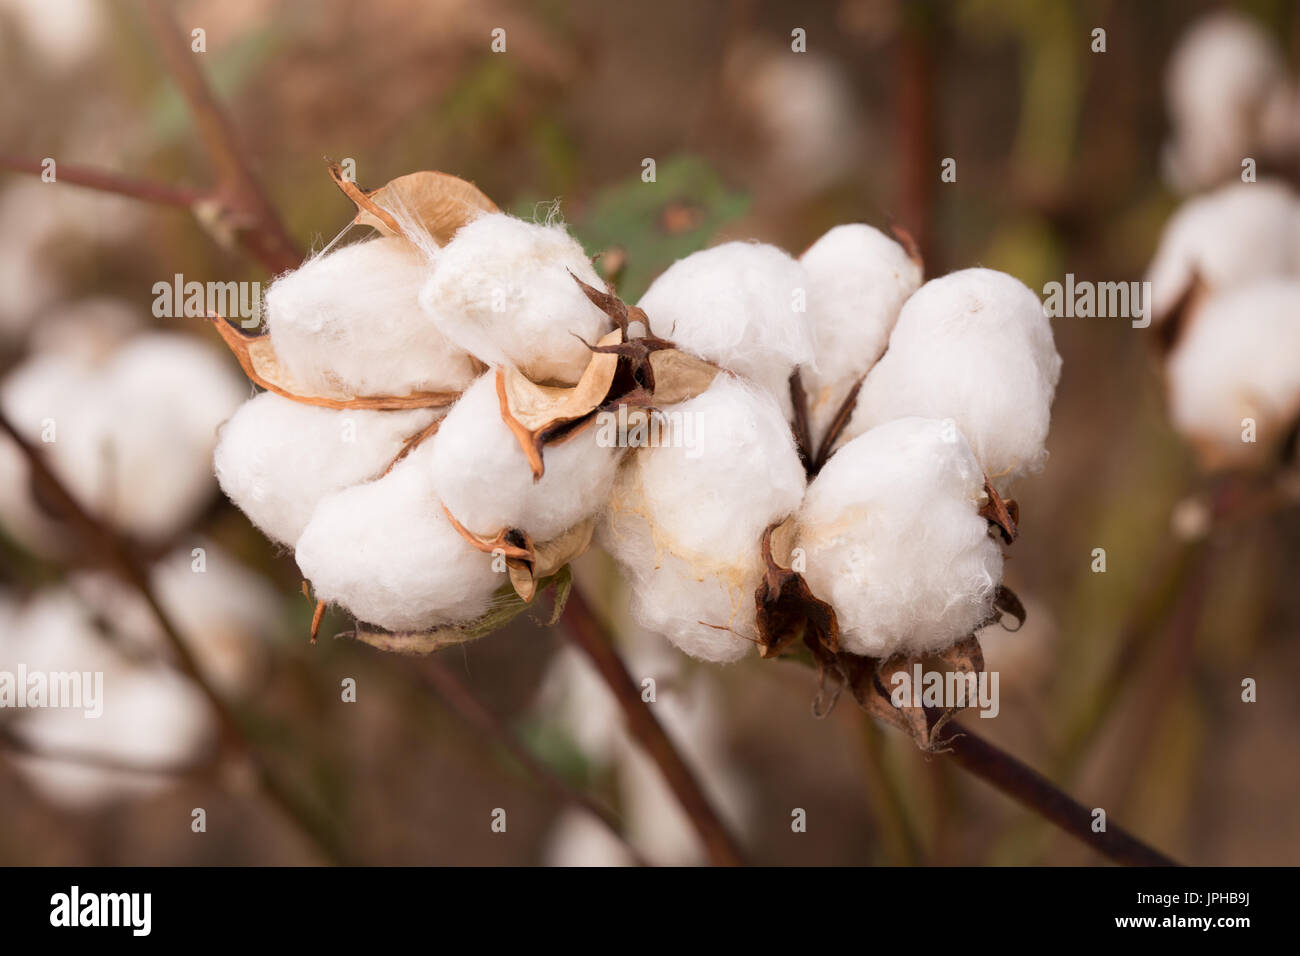 Cotton Bolls in a Louisiana Field - Stock Image